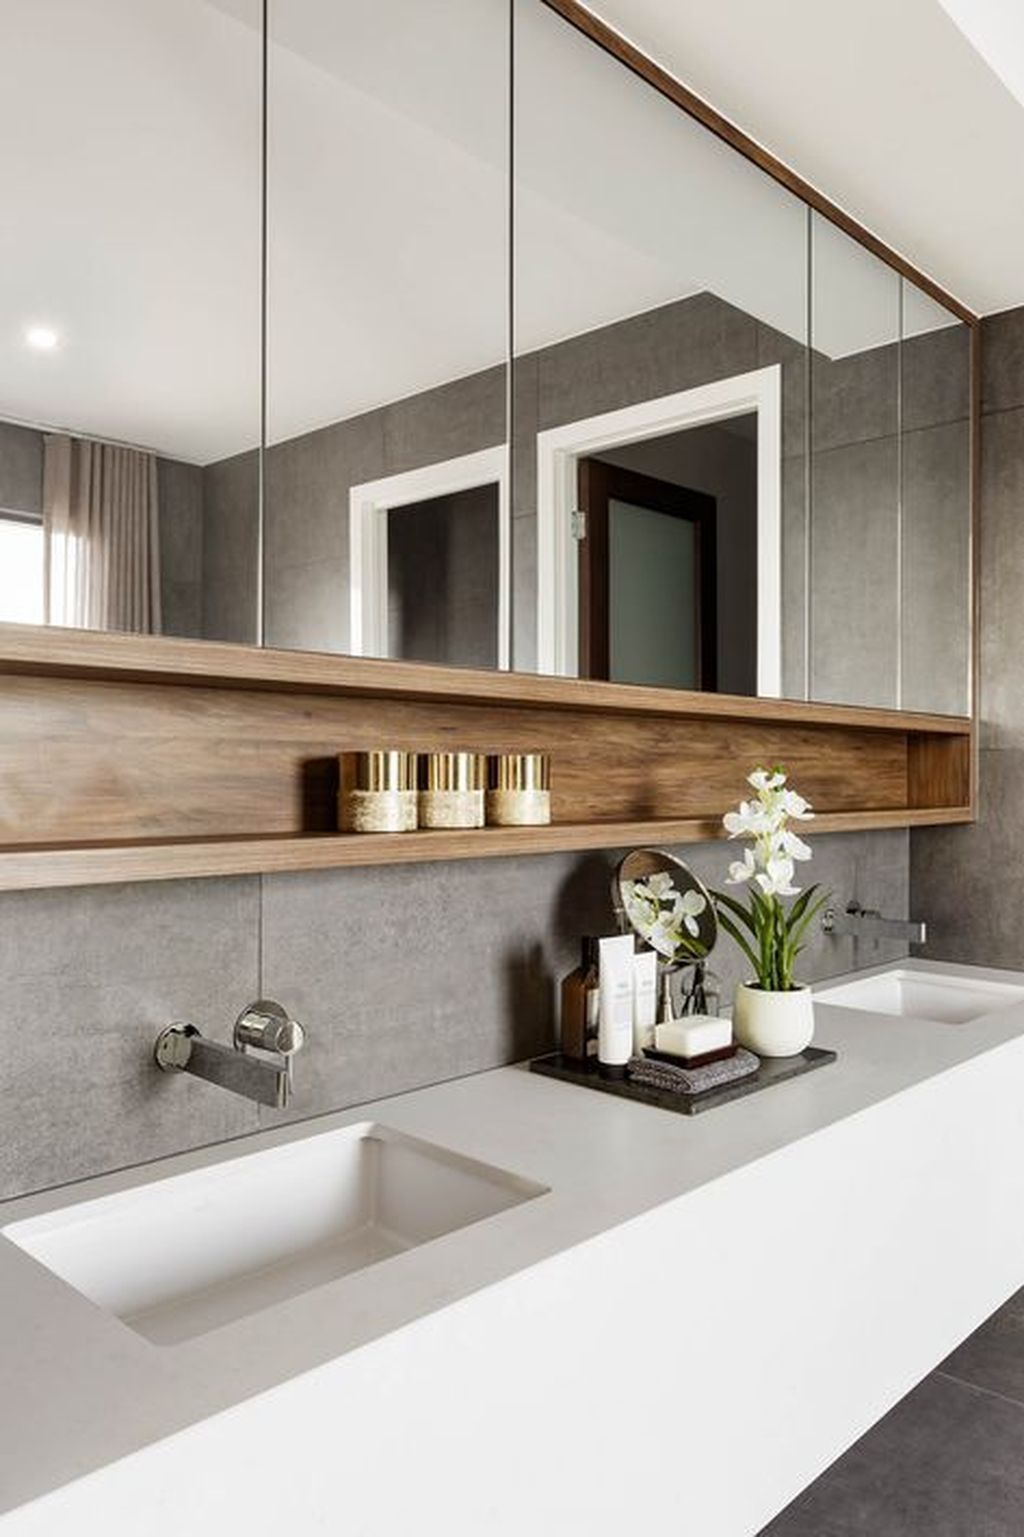 Simple Bathroom Design Ideas Every Bathroom Remodel Starts With A Style Suggestion From Contemporary Bathroom Designs Bathroom Design Modern Bathroom Design